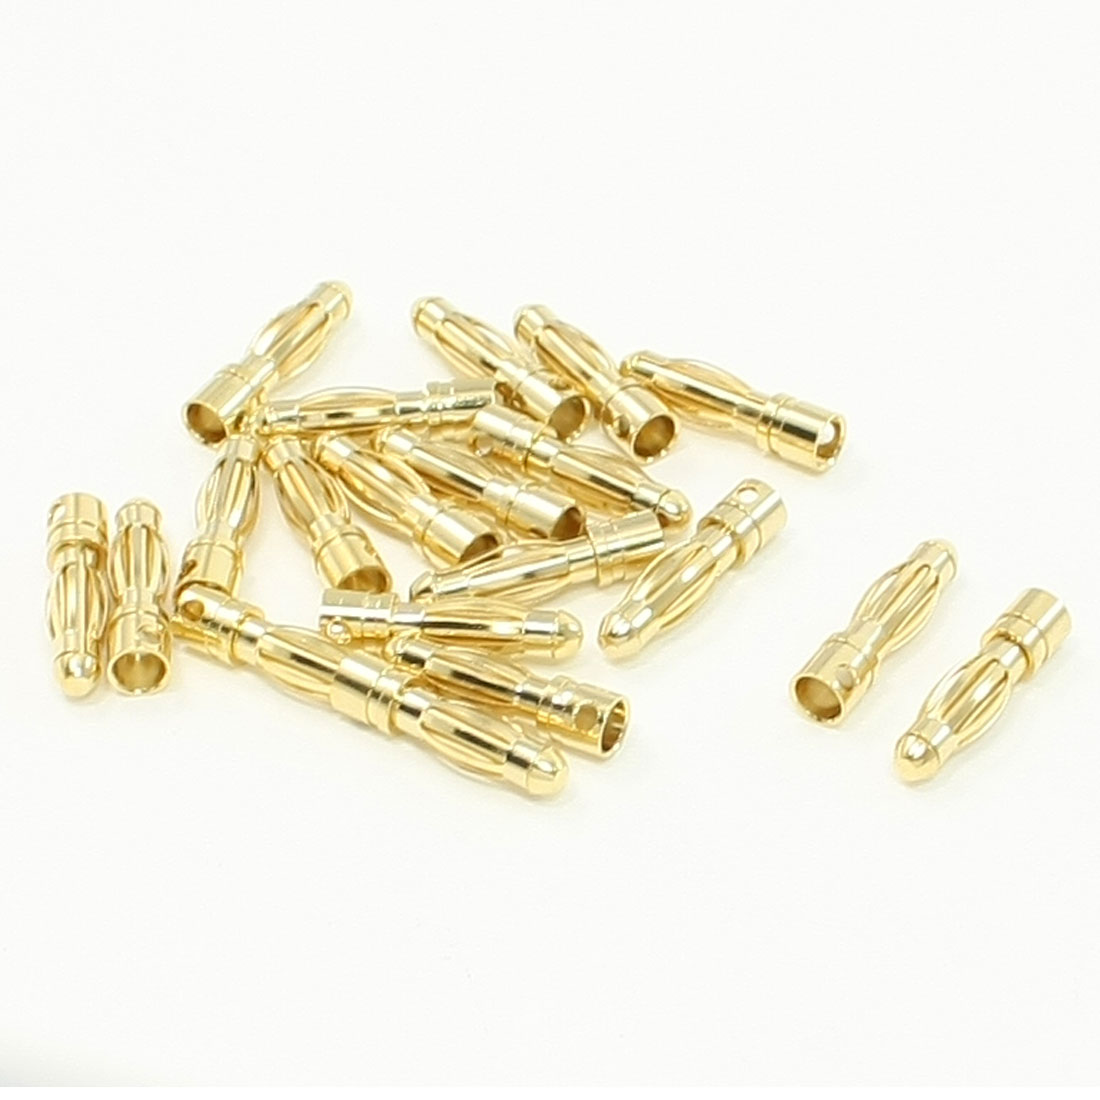 20pcs Y303 RC Model Battery Male Banana Connector 4mm Diameter